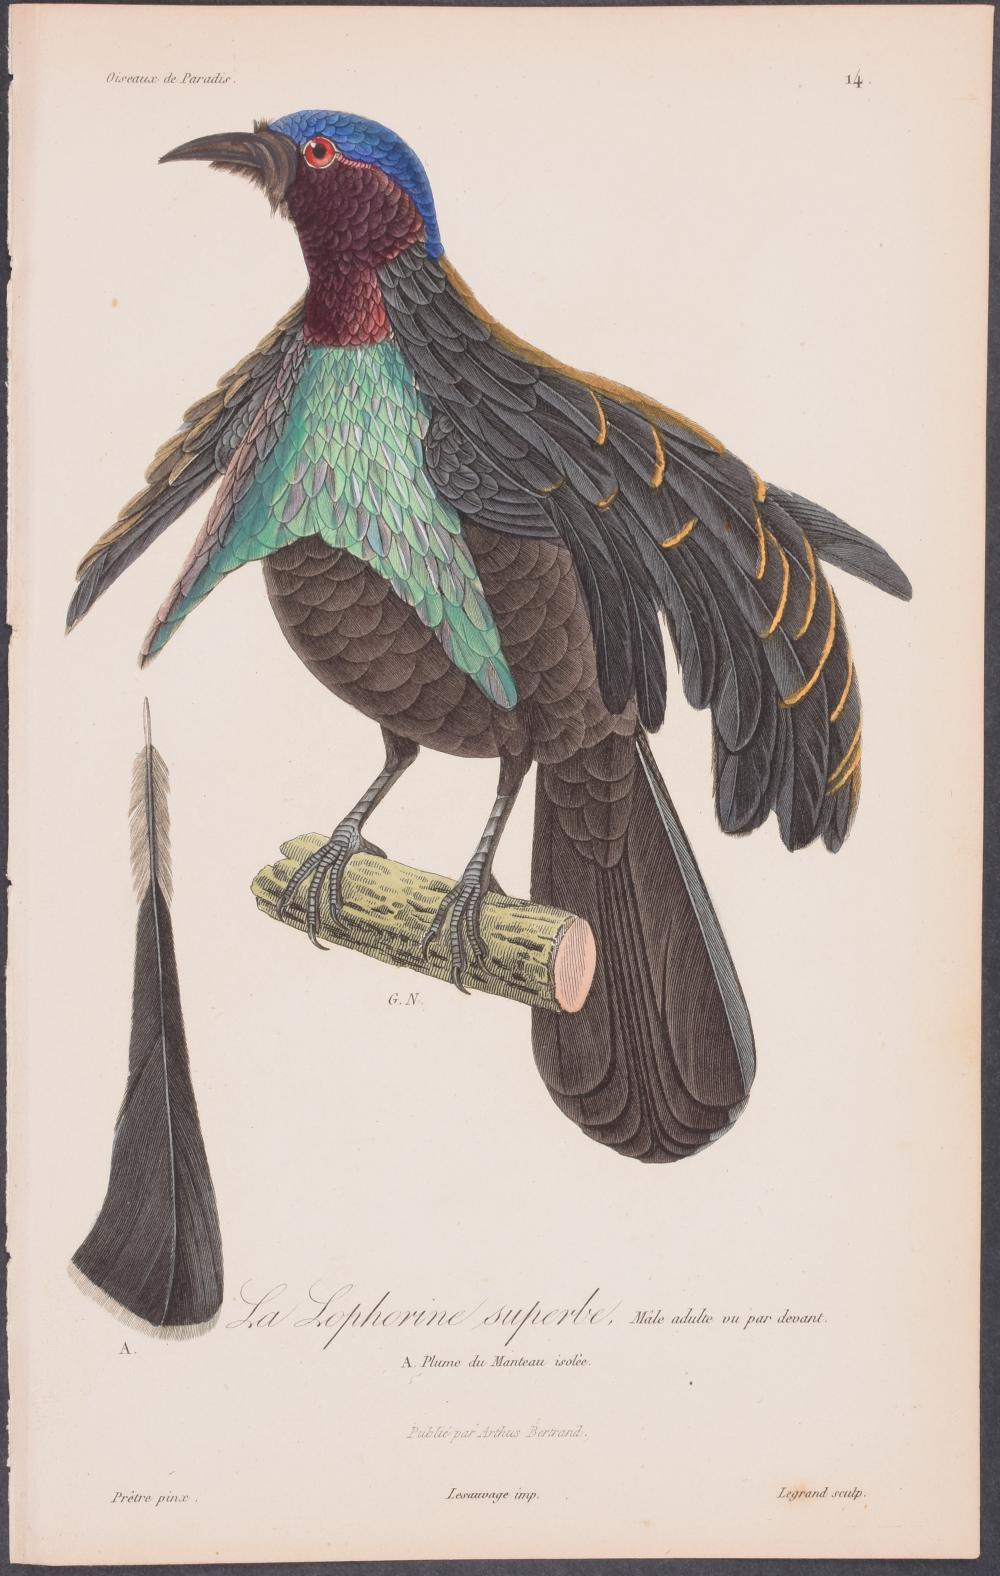 Lot 11052: Lesson - Bird of Paradise. 14